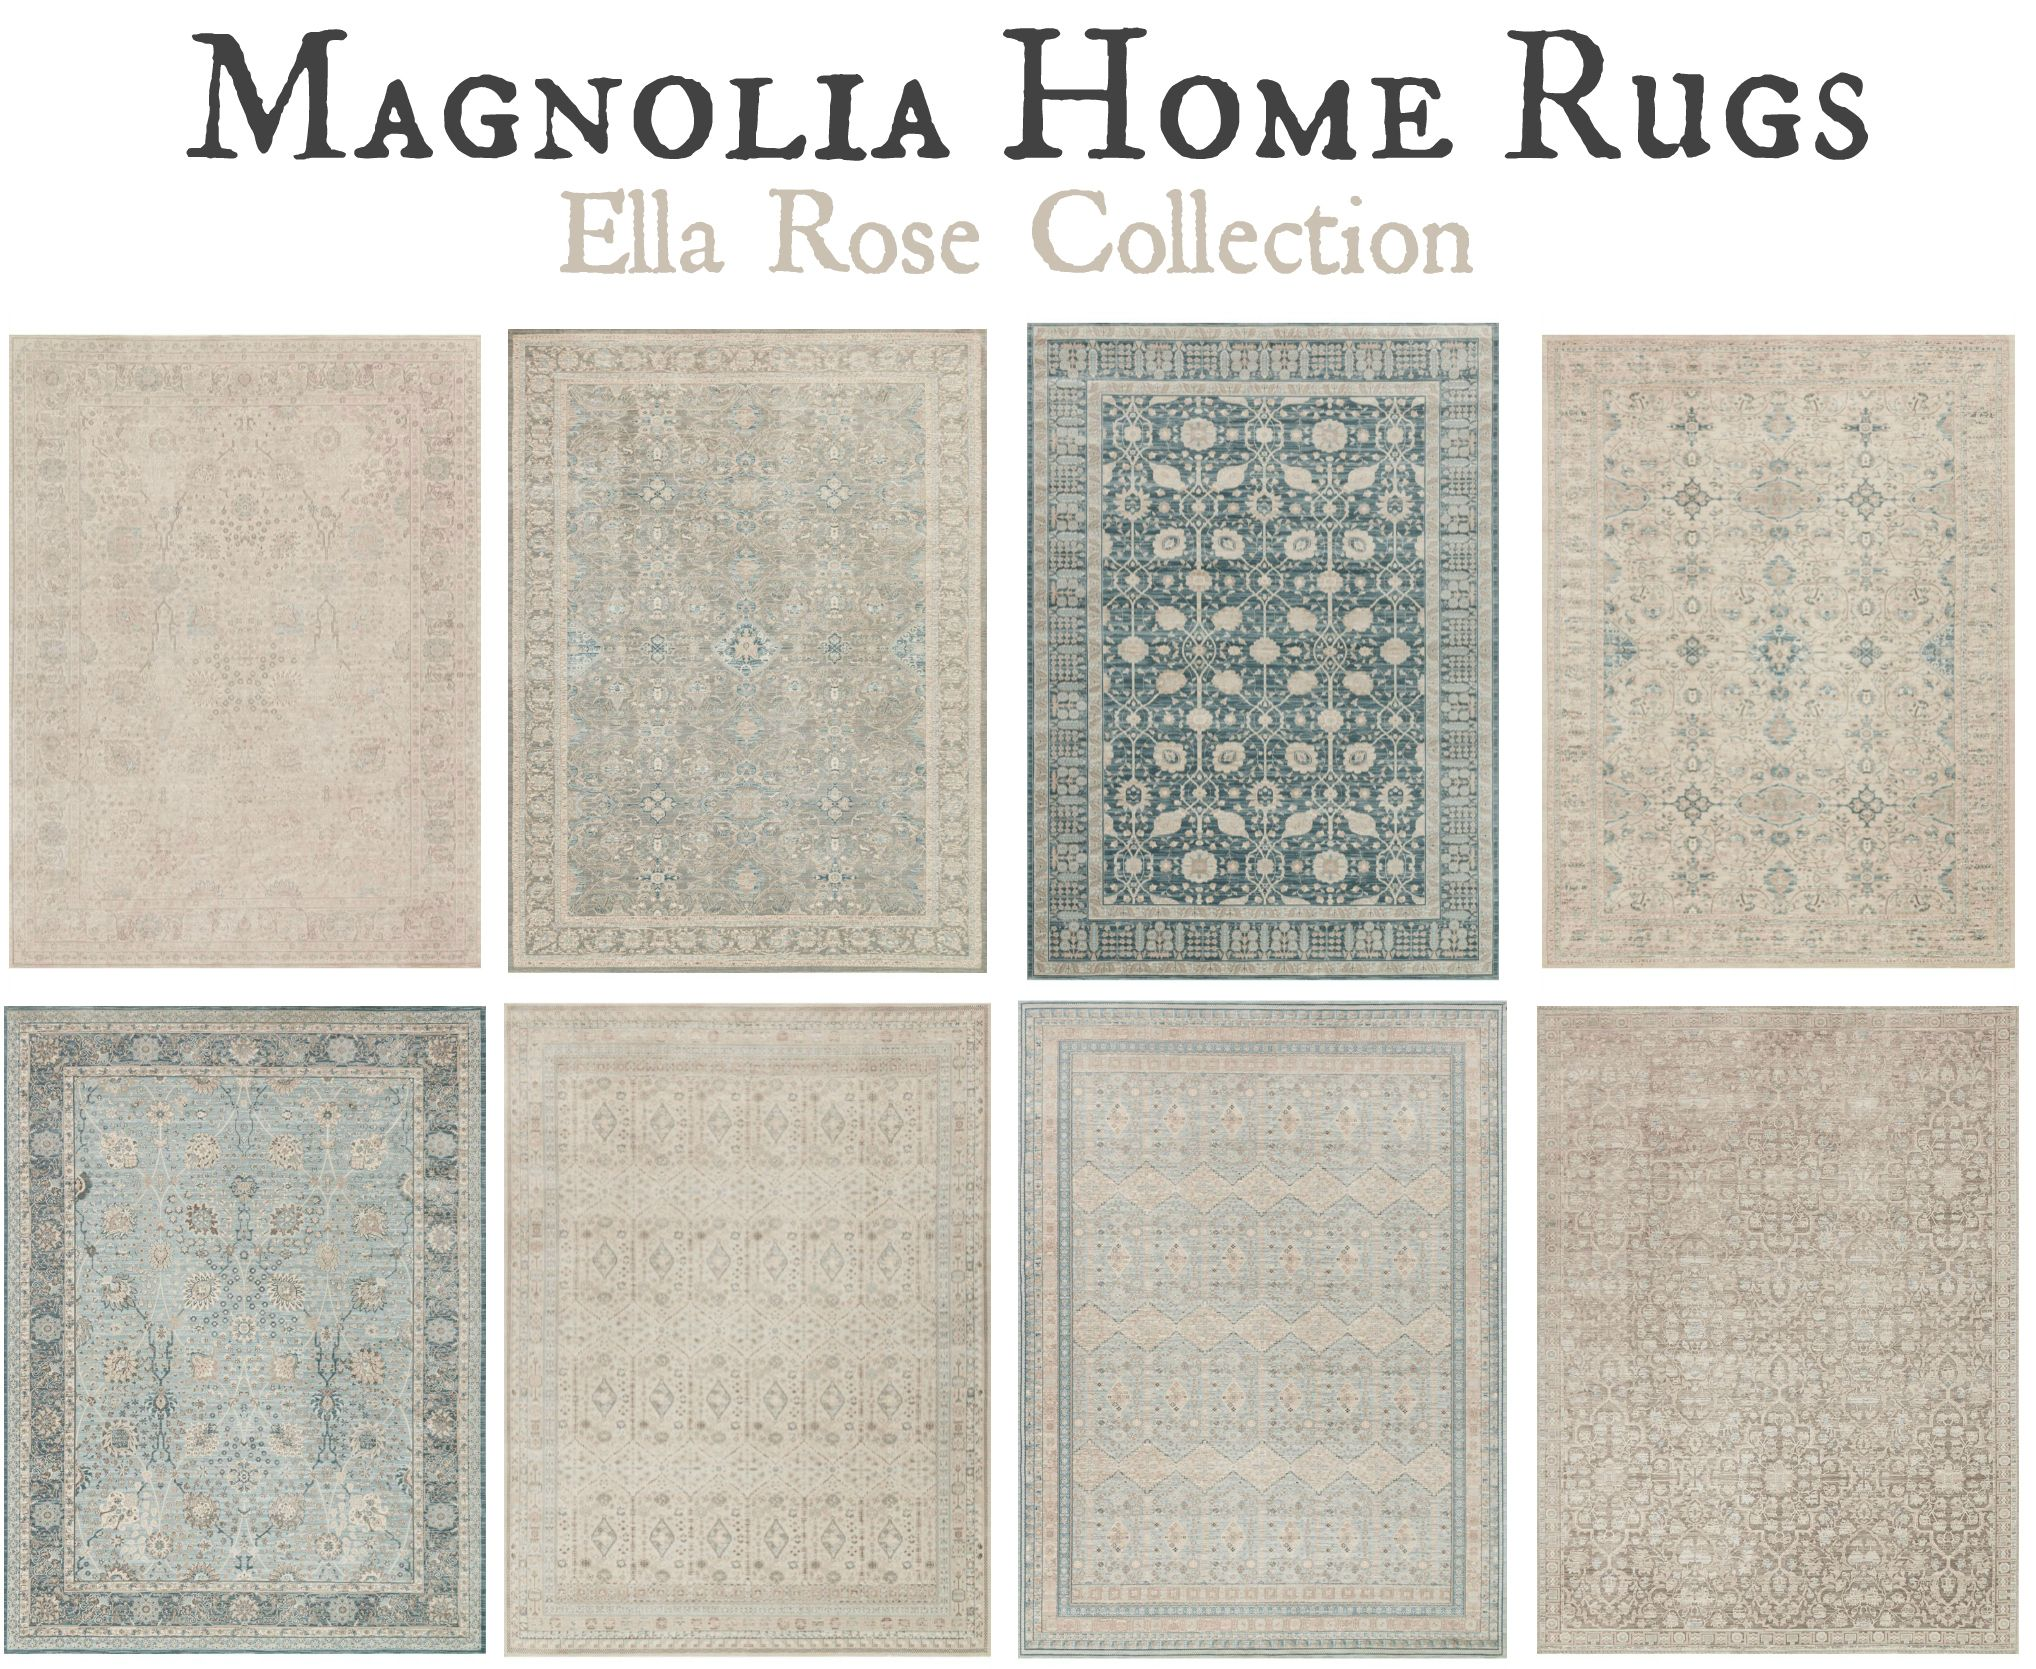 Where To Buy Magnolia Home Rugs Without Leaving Your House